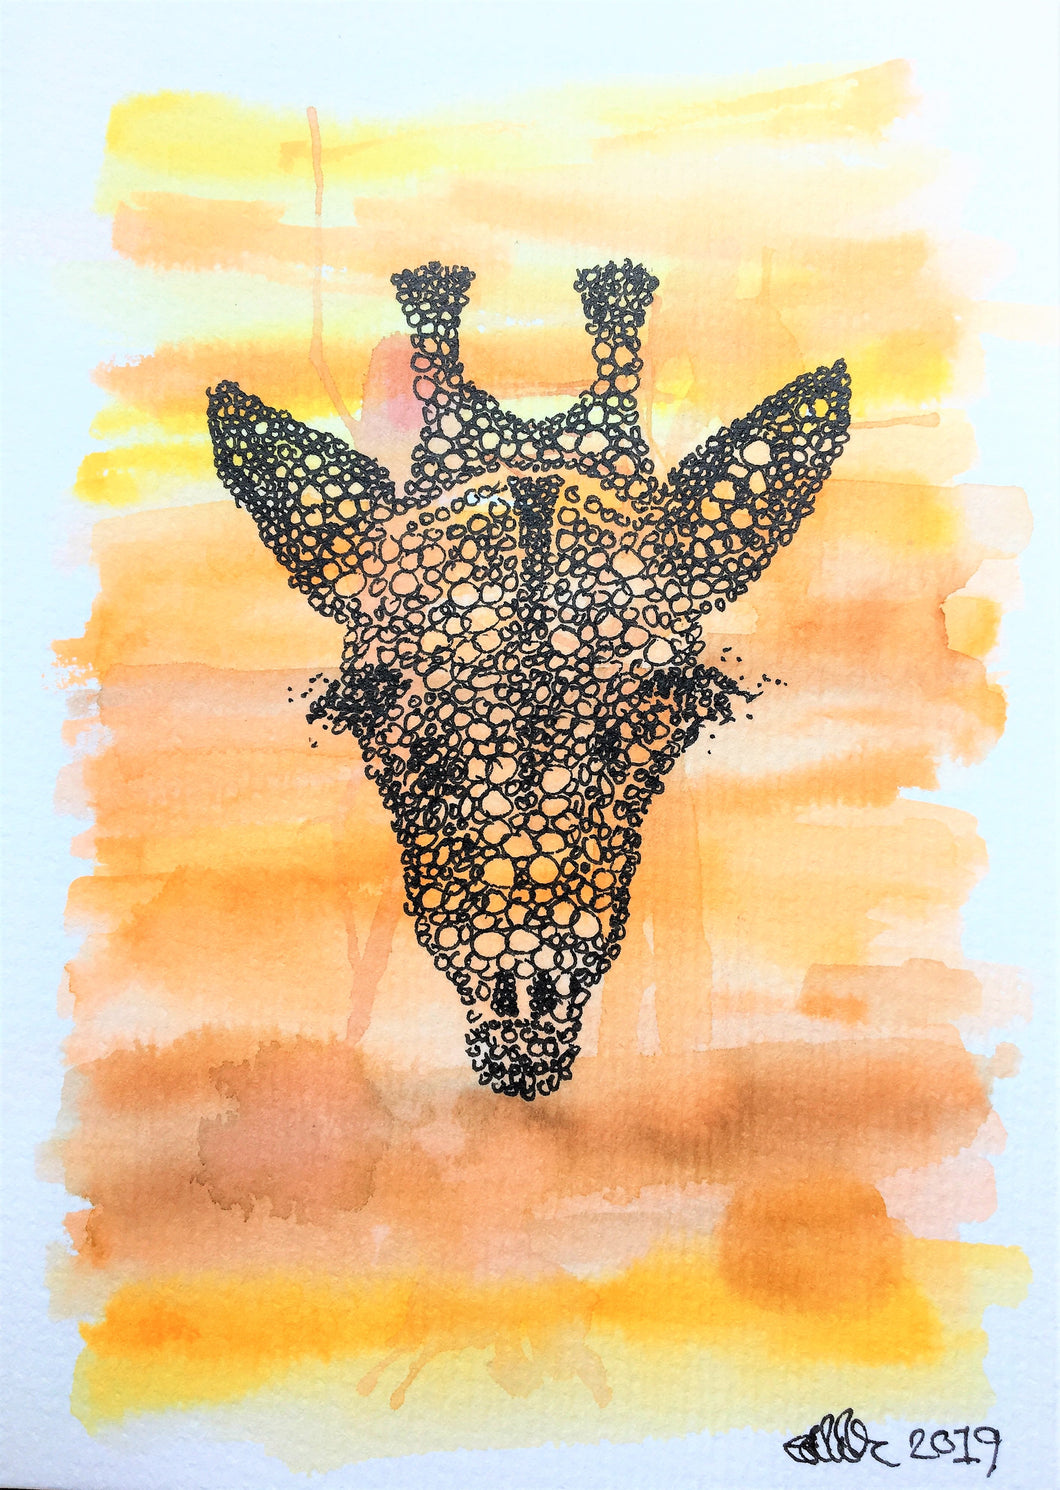 Handpainted Watercolour Greeting Card - Abstract Giraffe design